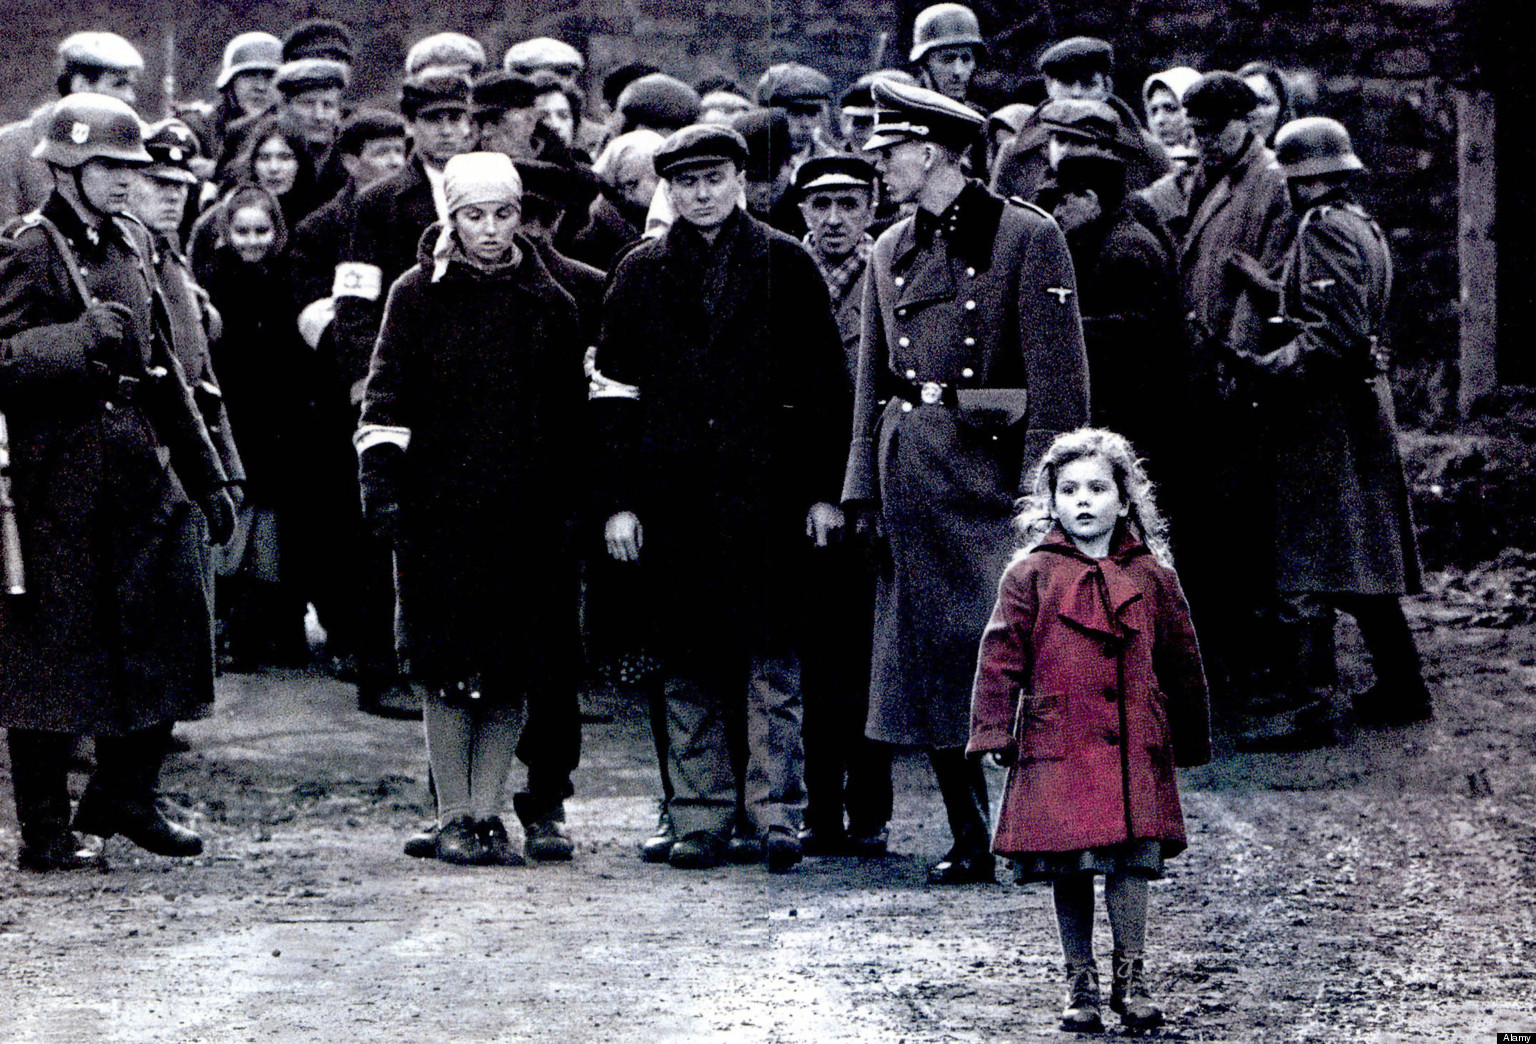 Schindler's List: A significant and captivating film that everyone needs to experience.